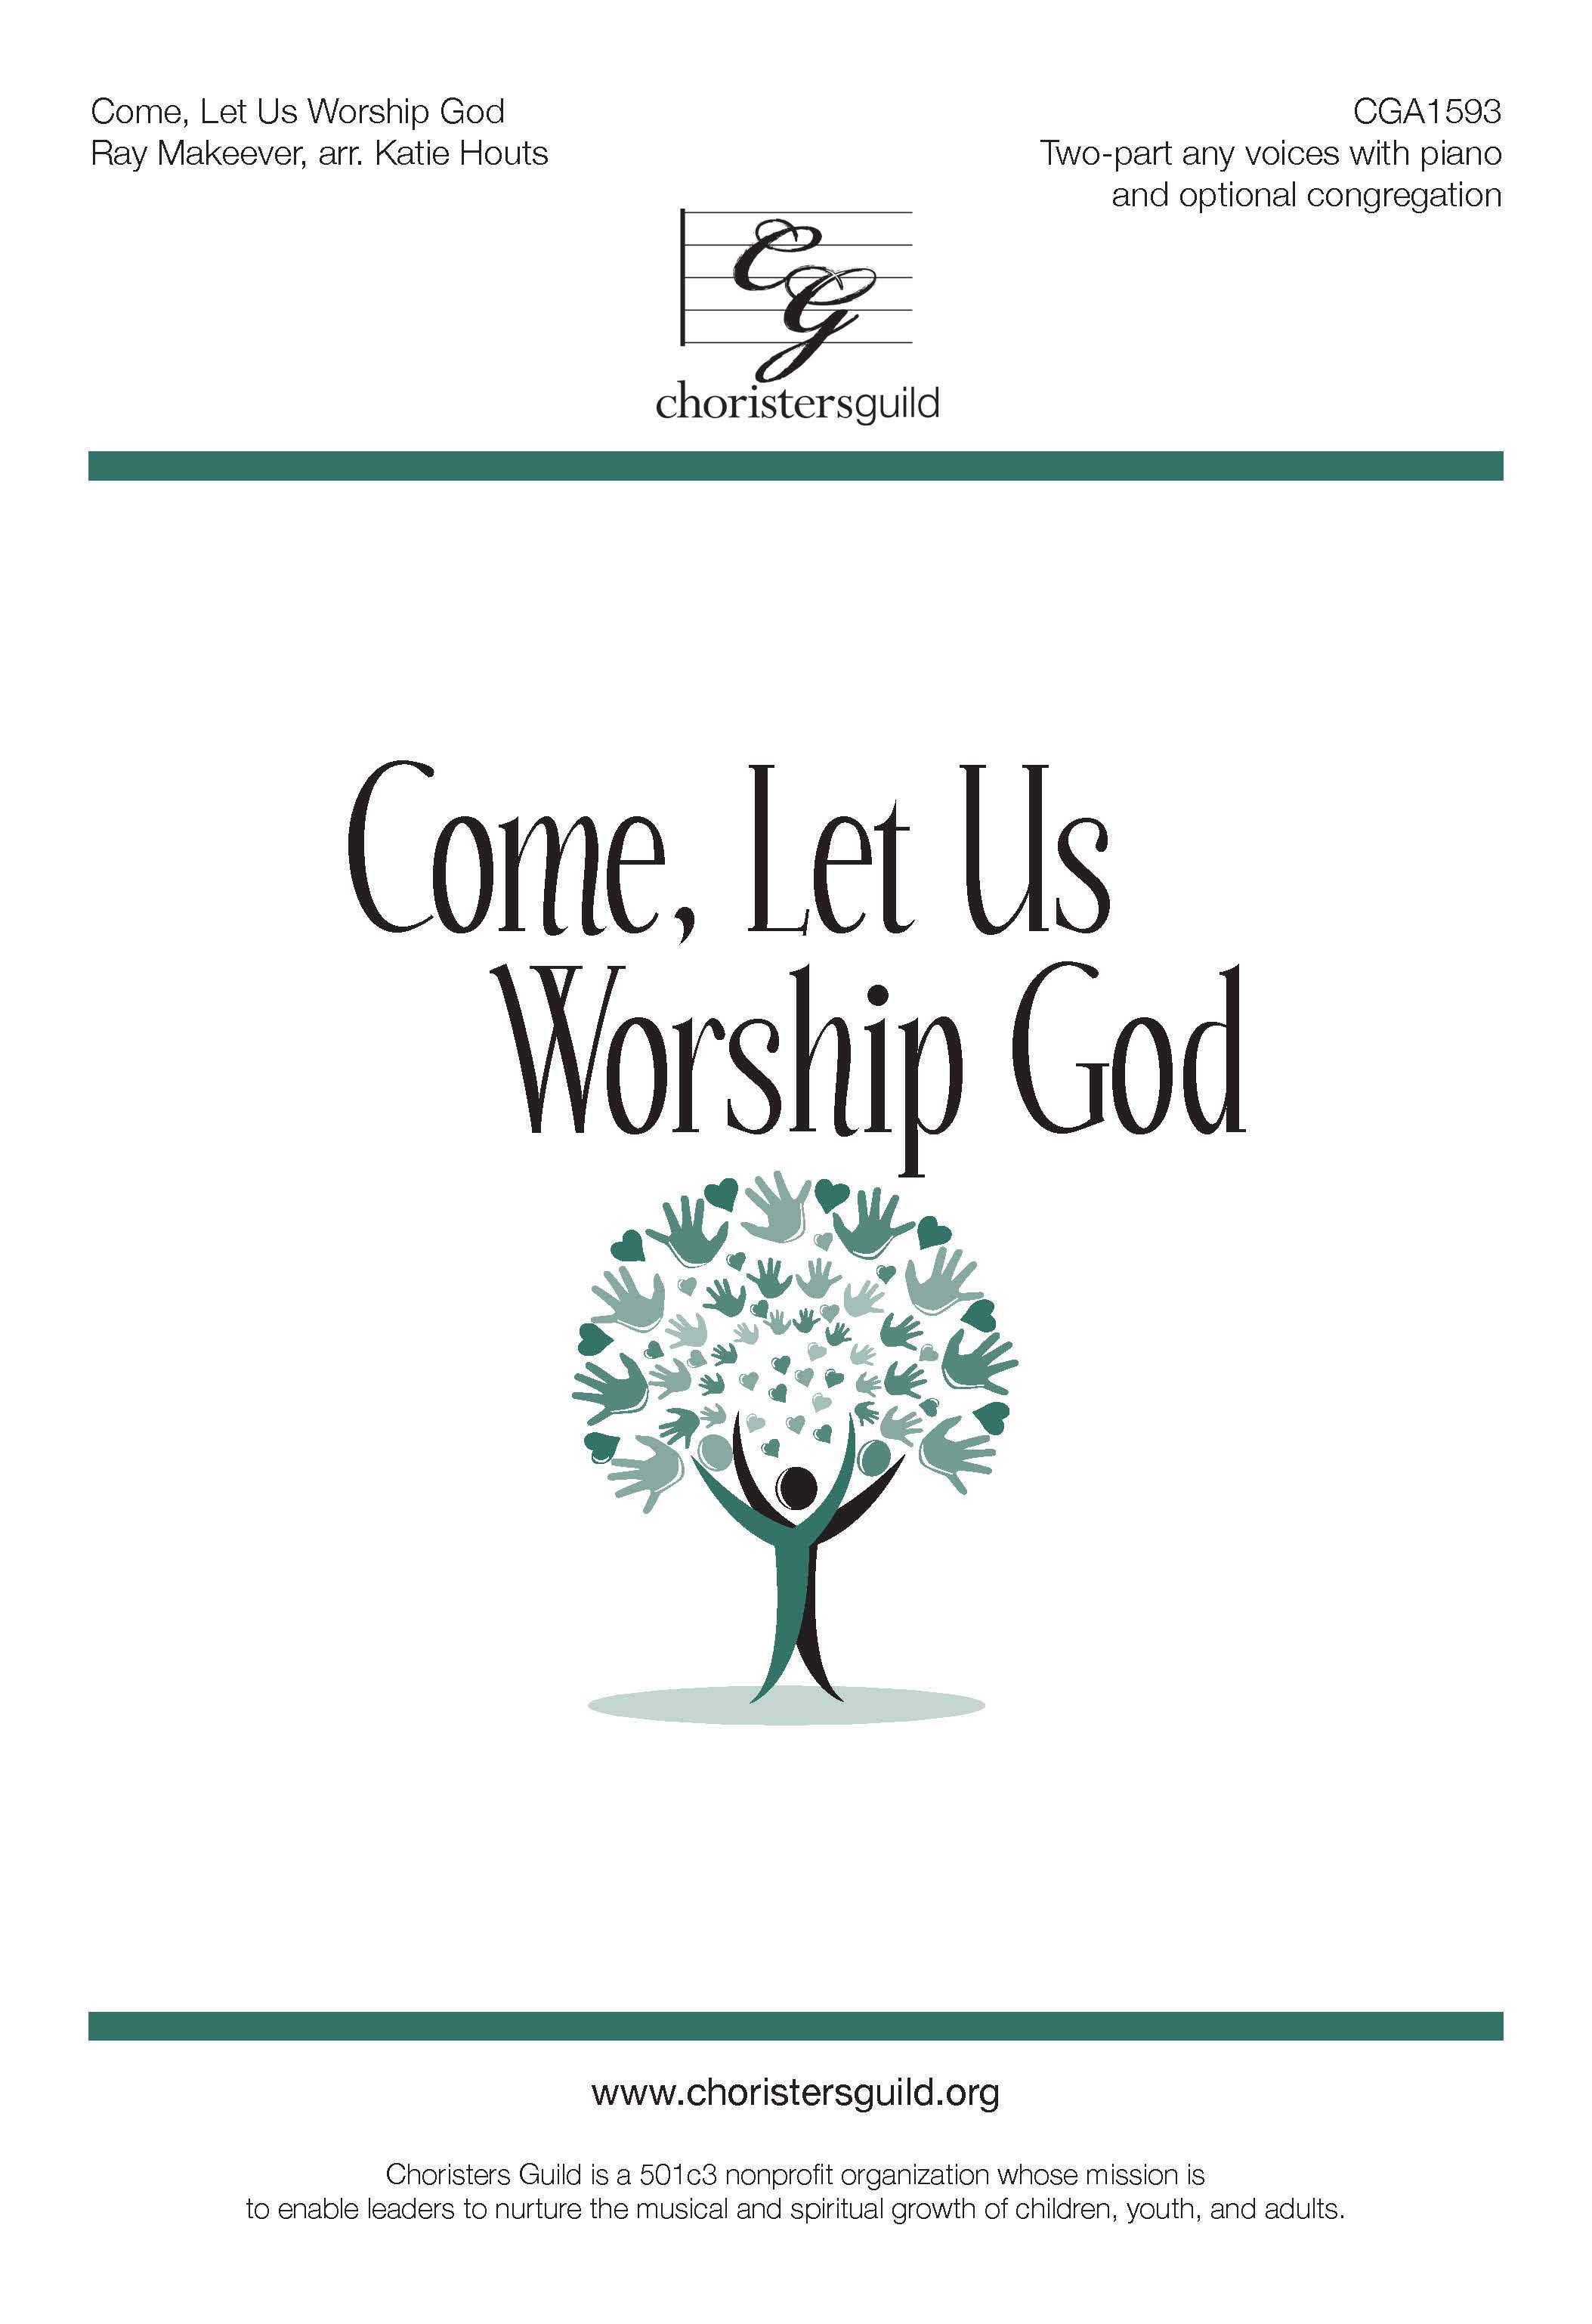 Come, Let Us Worship God - Two-part